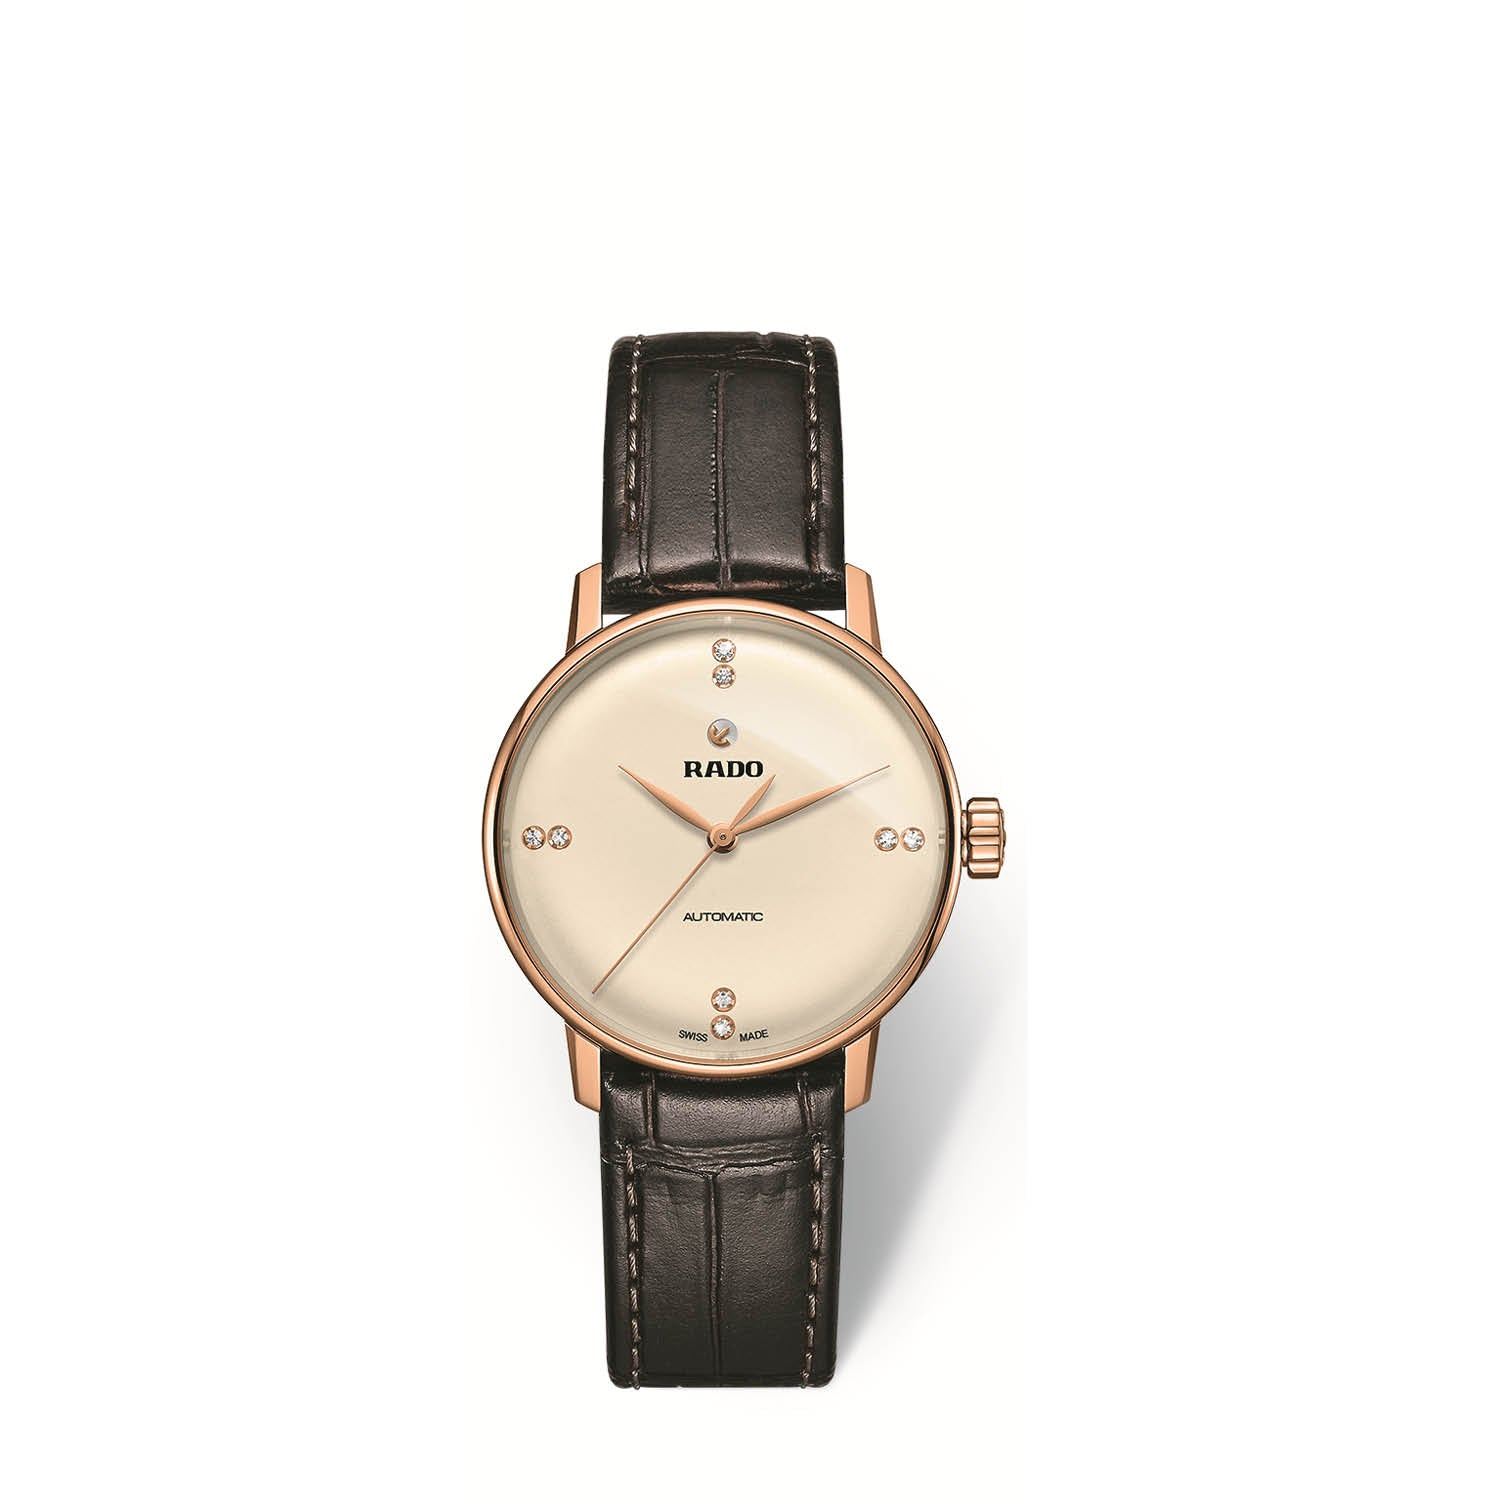 RADO Coupole Classic S, champagne dial with leather strap R22865765